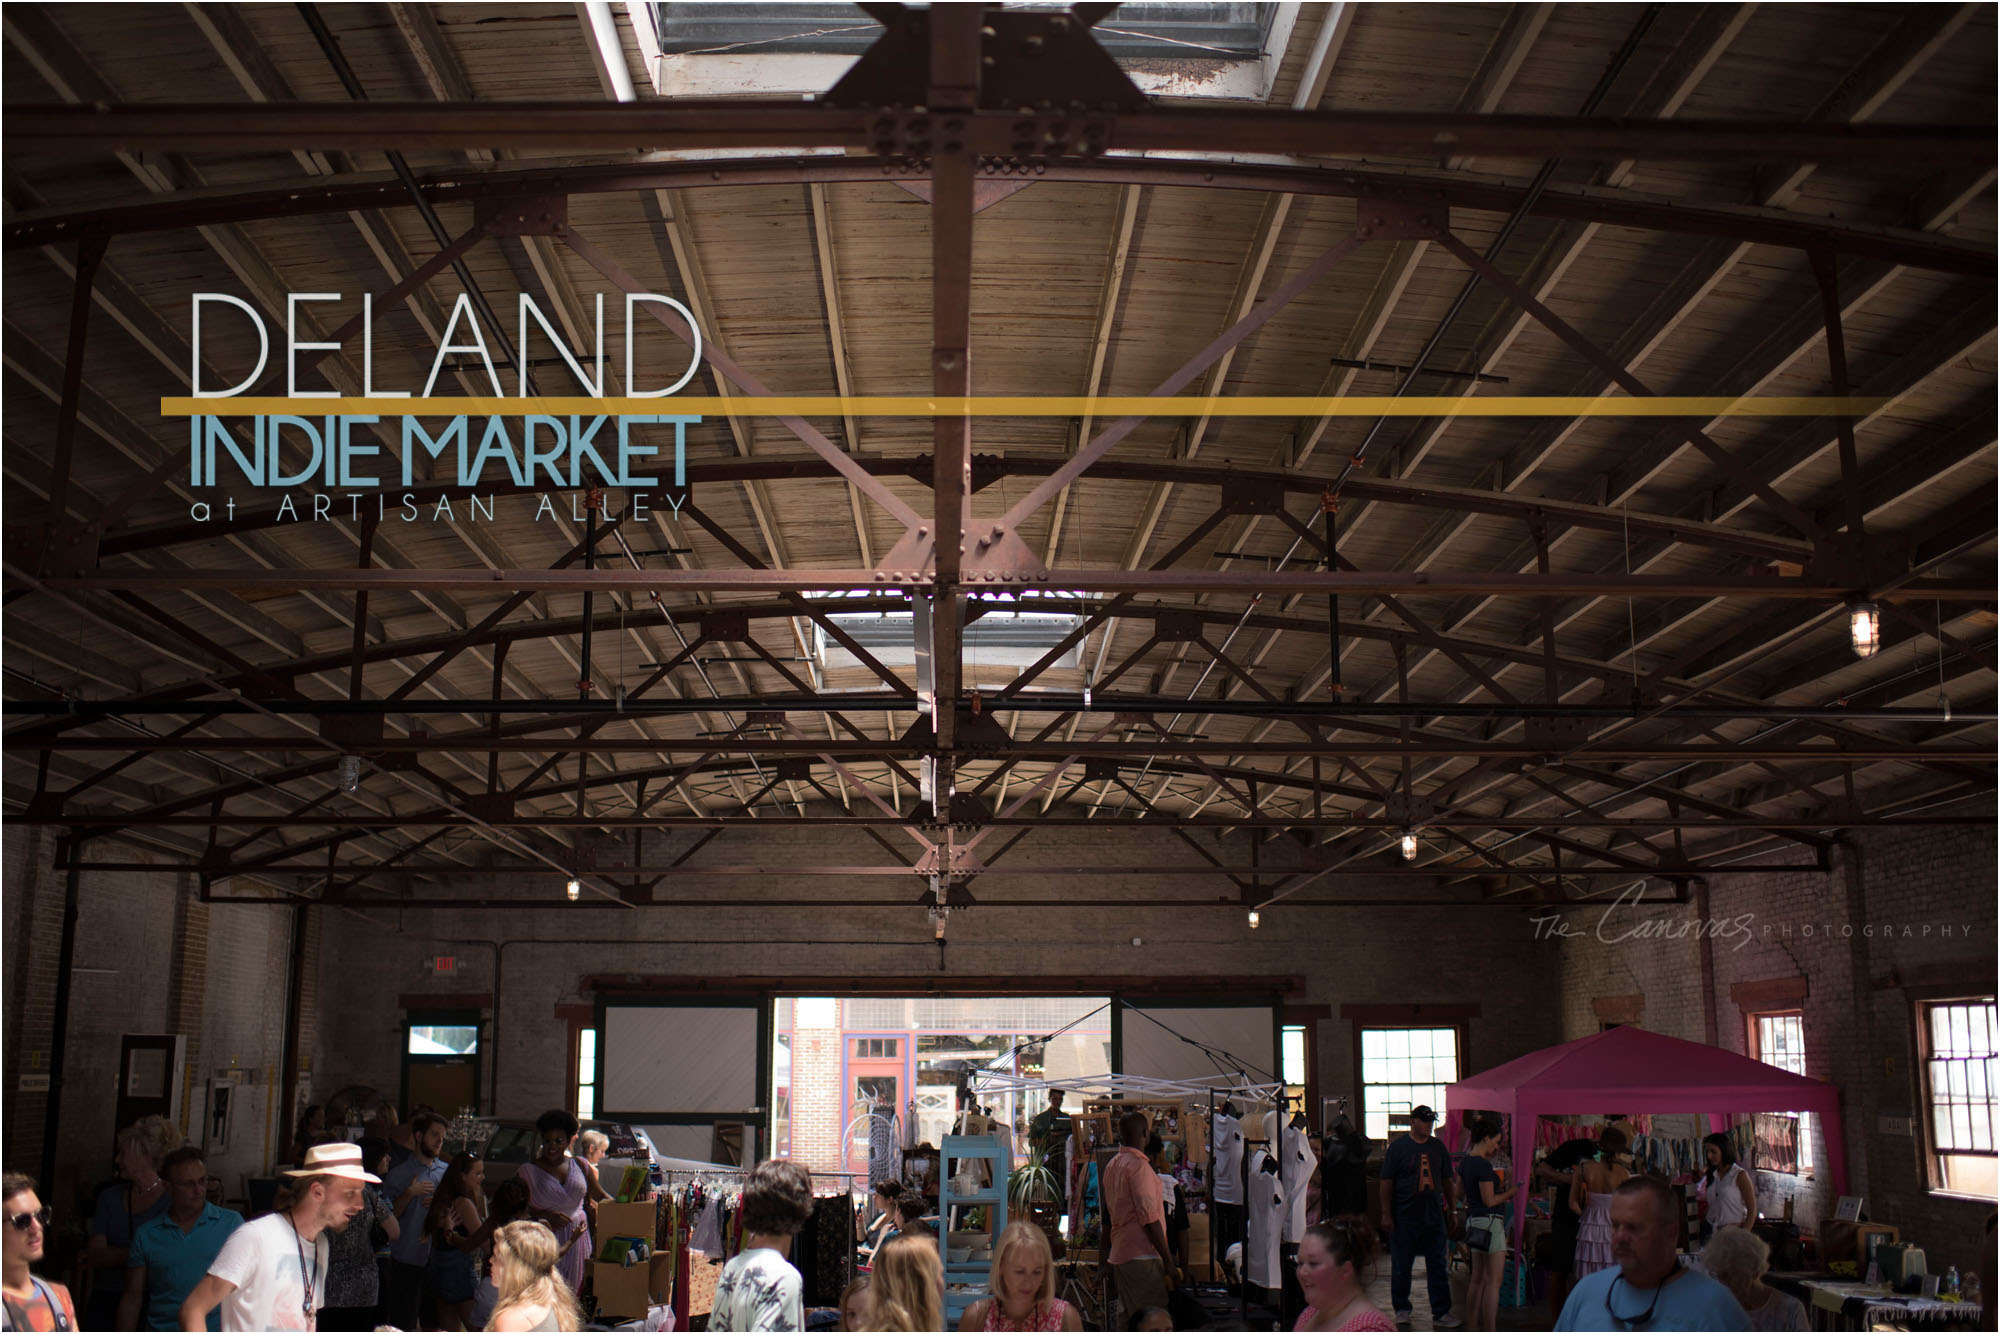 01_DeLand_Event_Indy_Market_May